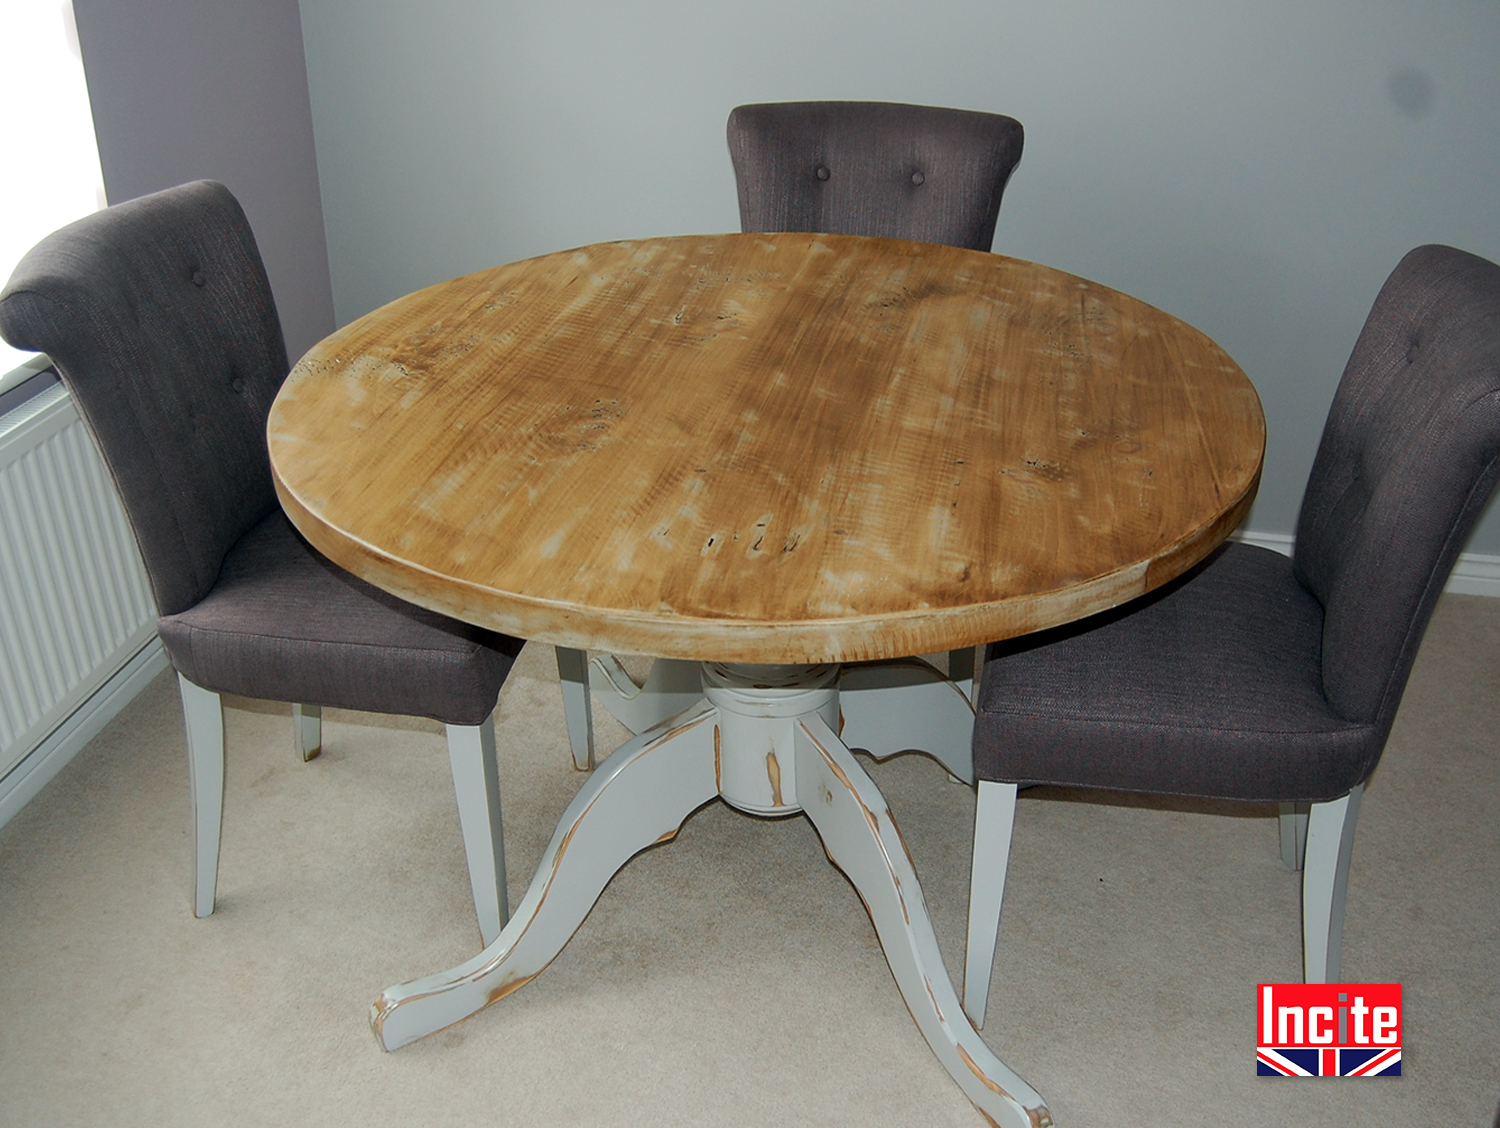 Distressed painted and pine round tables by incite derby for Distressed round dining table